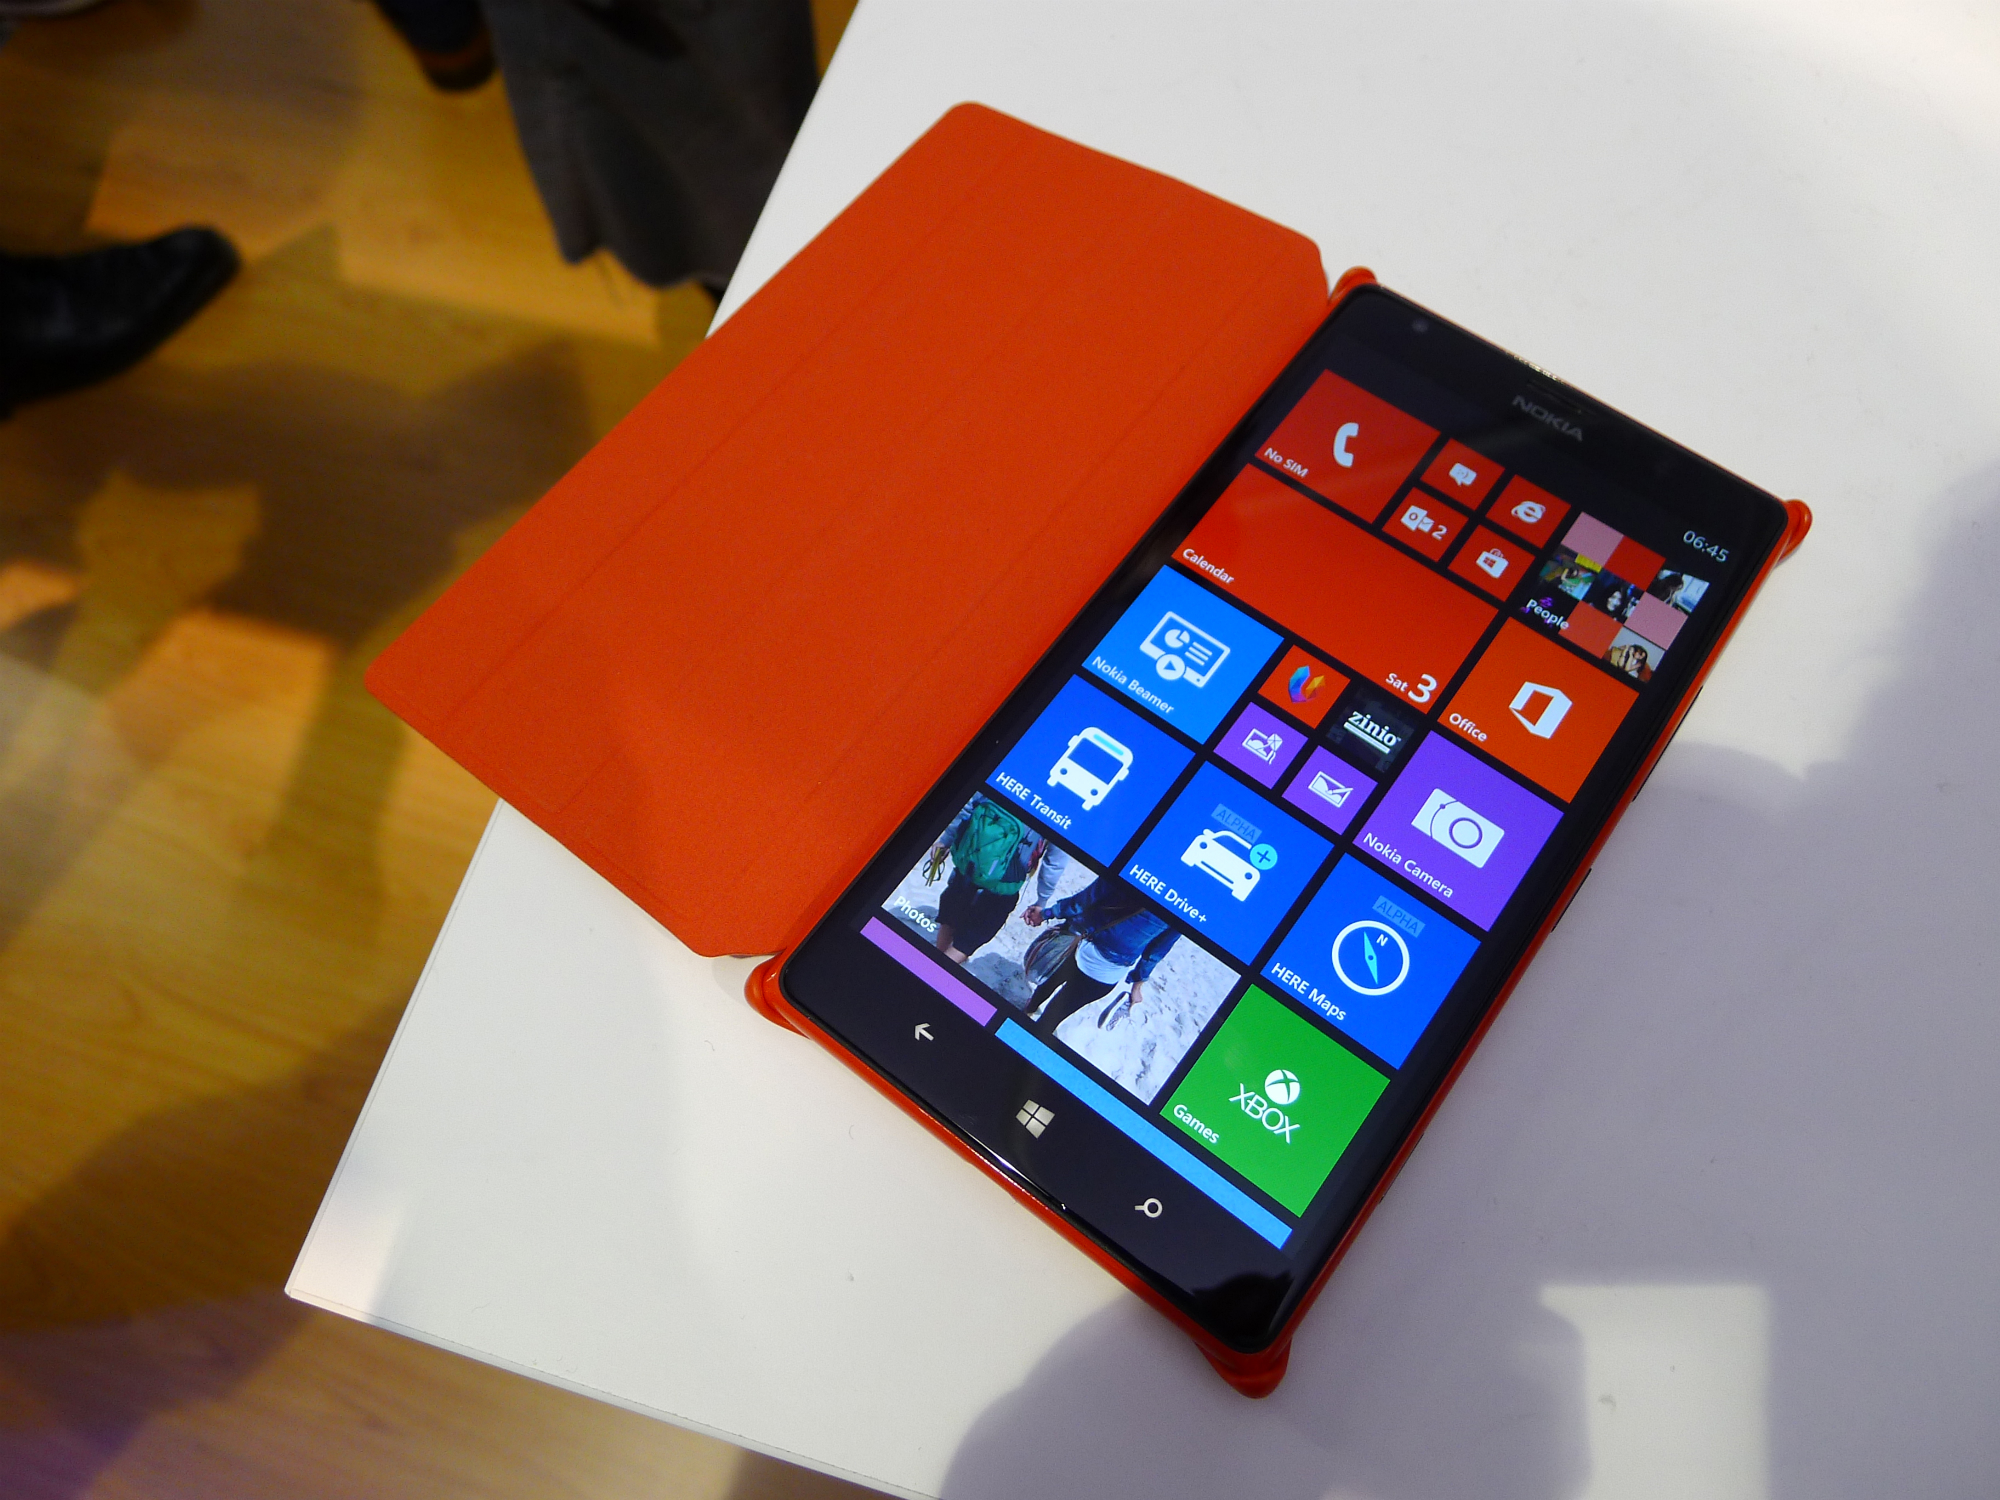 Nokia Lumia 1520 Hands On